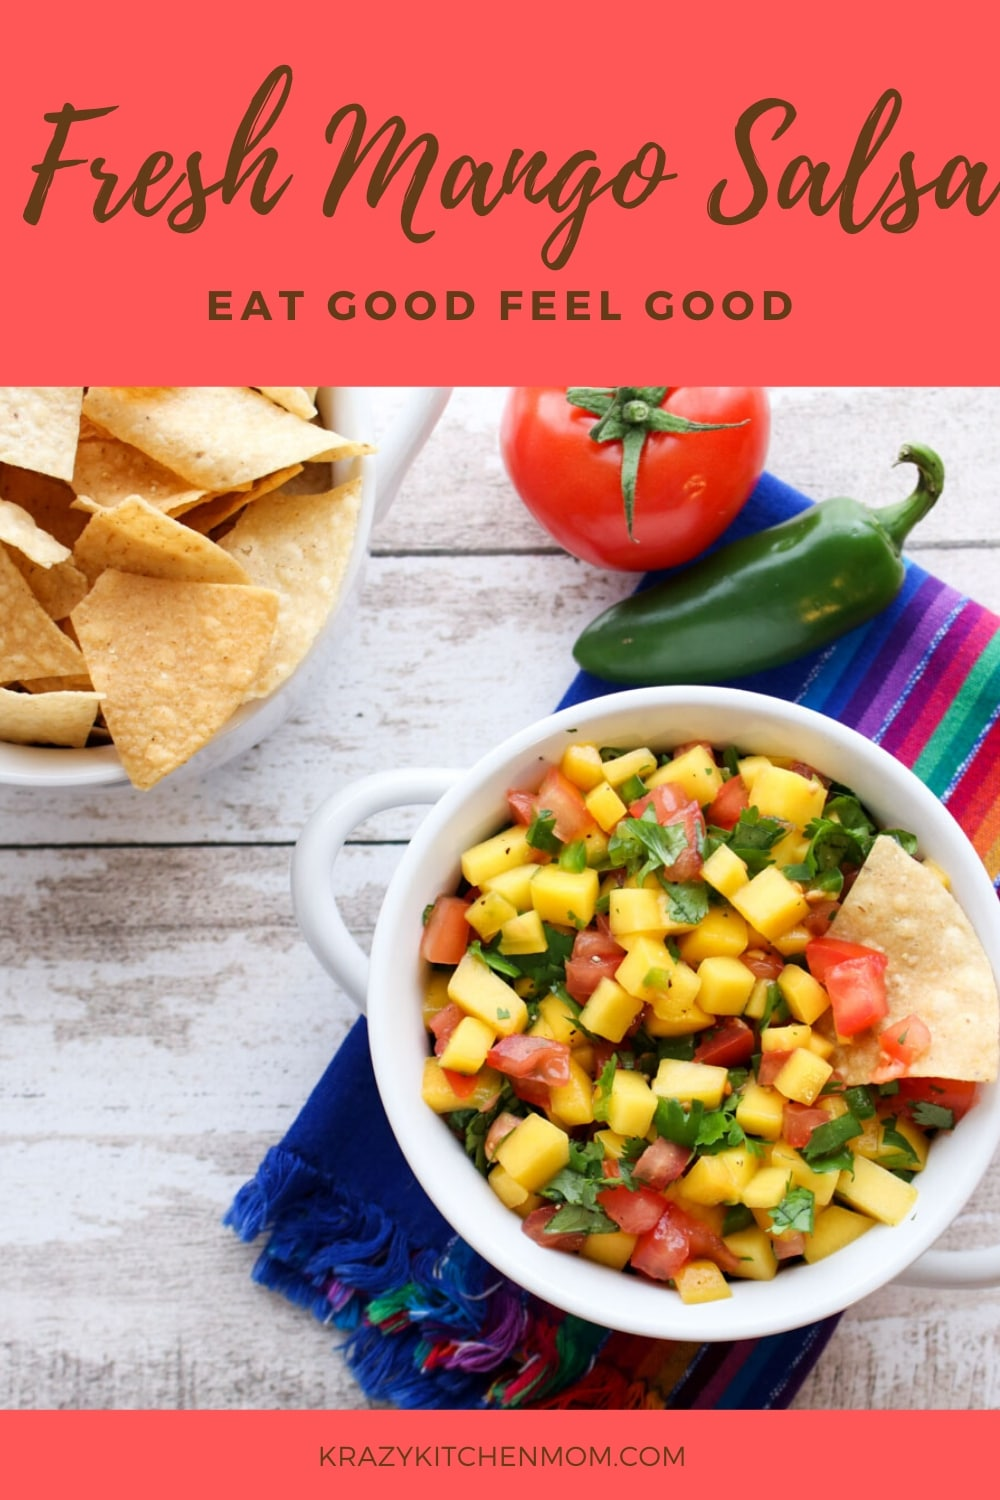 Fresh Mango Salsa is bursting with bright sweet flavor from the perfectly ripened mango and bright red tomatoes with a hint of heat from a jalapeno.  via @krazykitchenmom